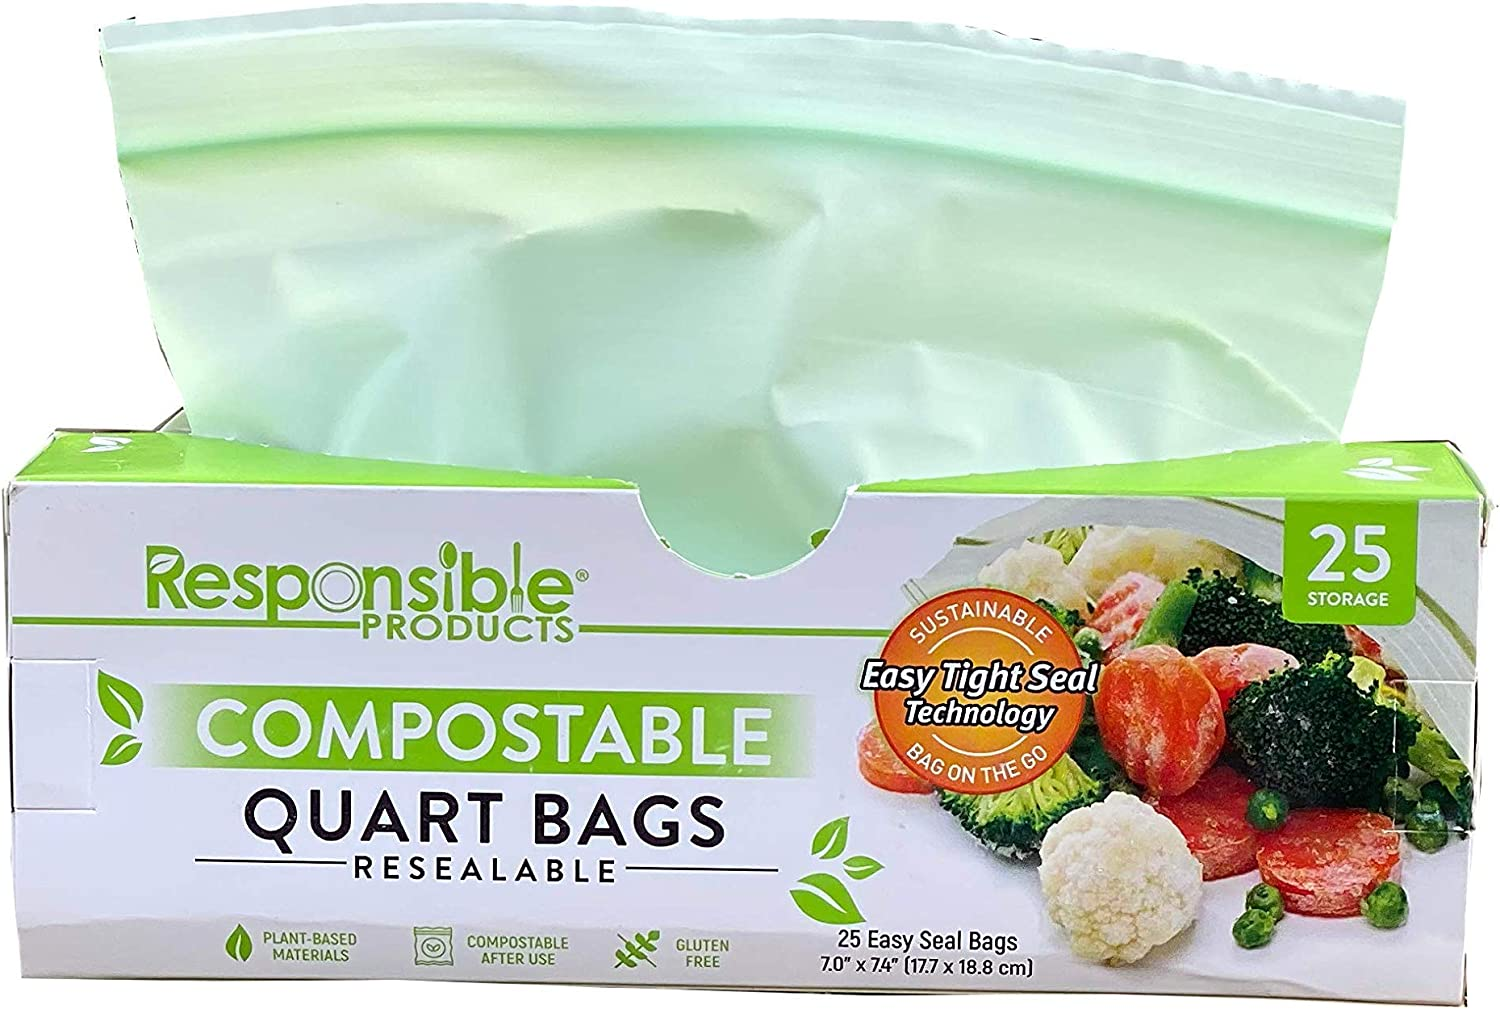 Responsible Products Home Compostable QUART Zip Bag, Resealable Extra Strength Biodegradable Bags, Plant-Based Freezer-Safe (25 Pack)